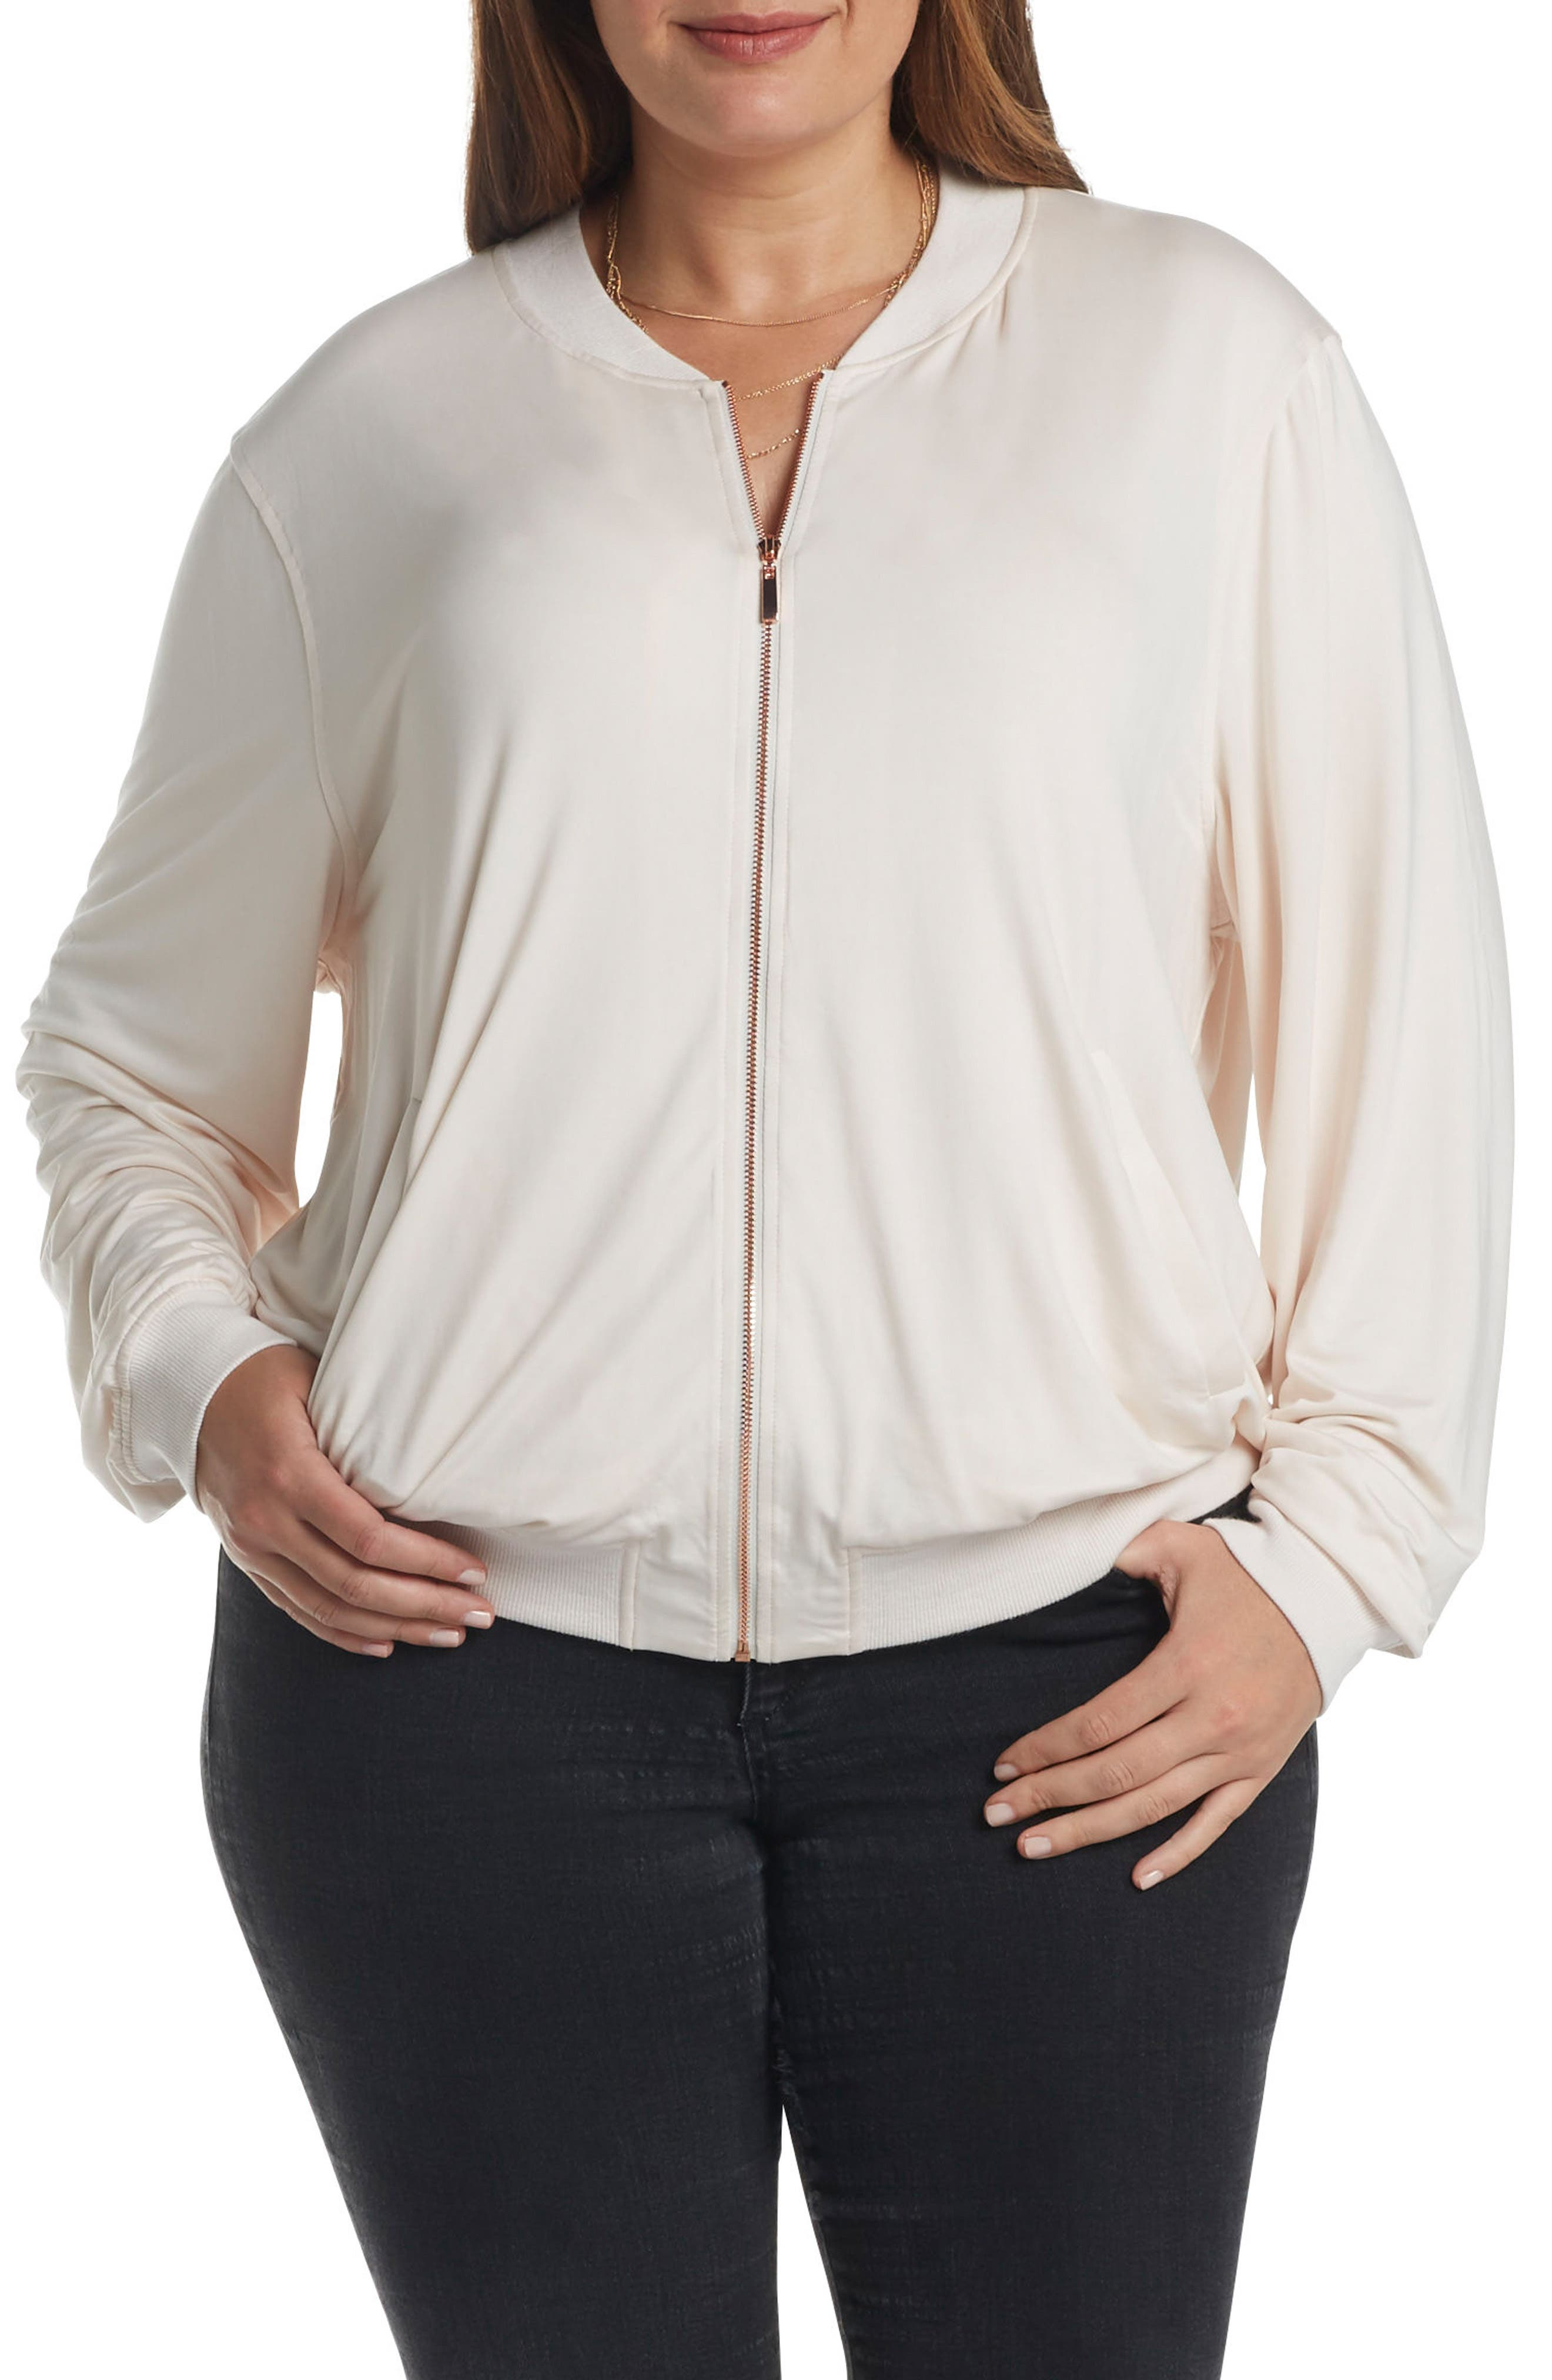 Alternate Image 1 Selected - Tart Hollice Bomber Jacket (Plus Size)